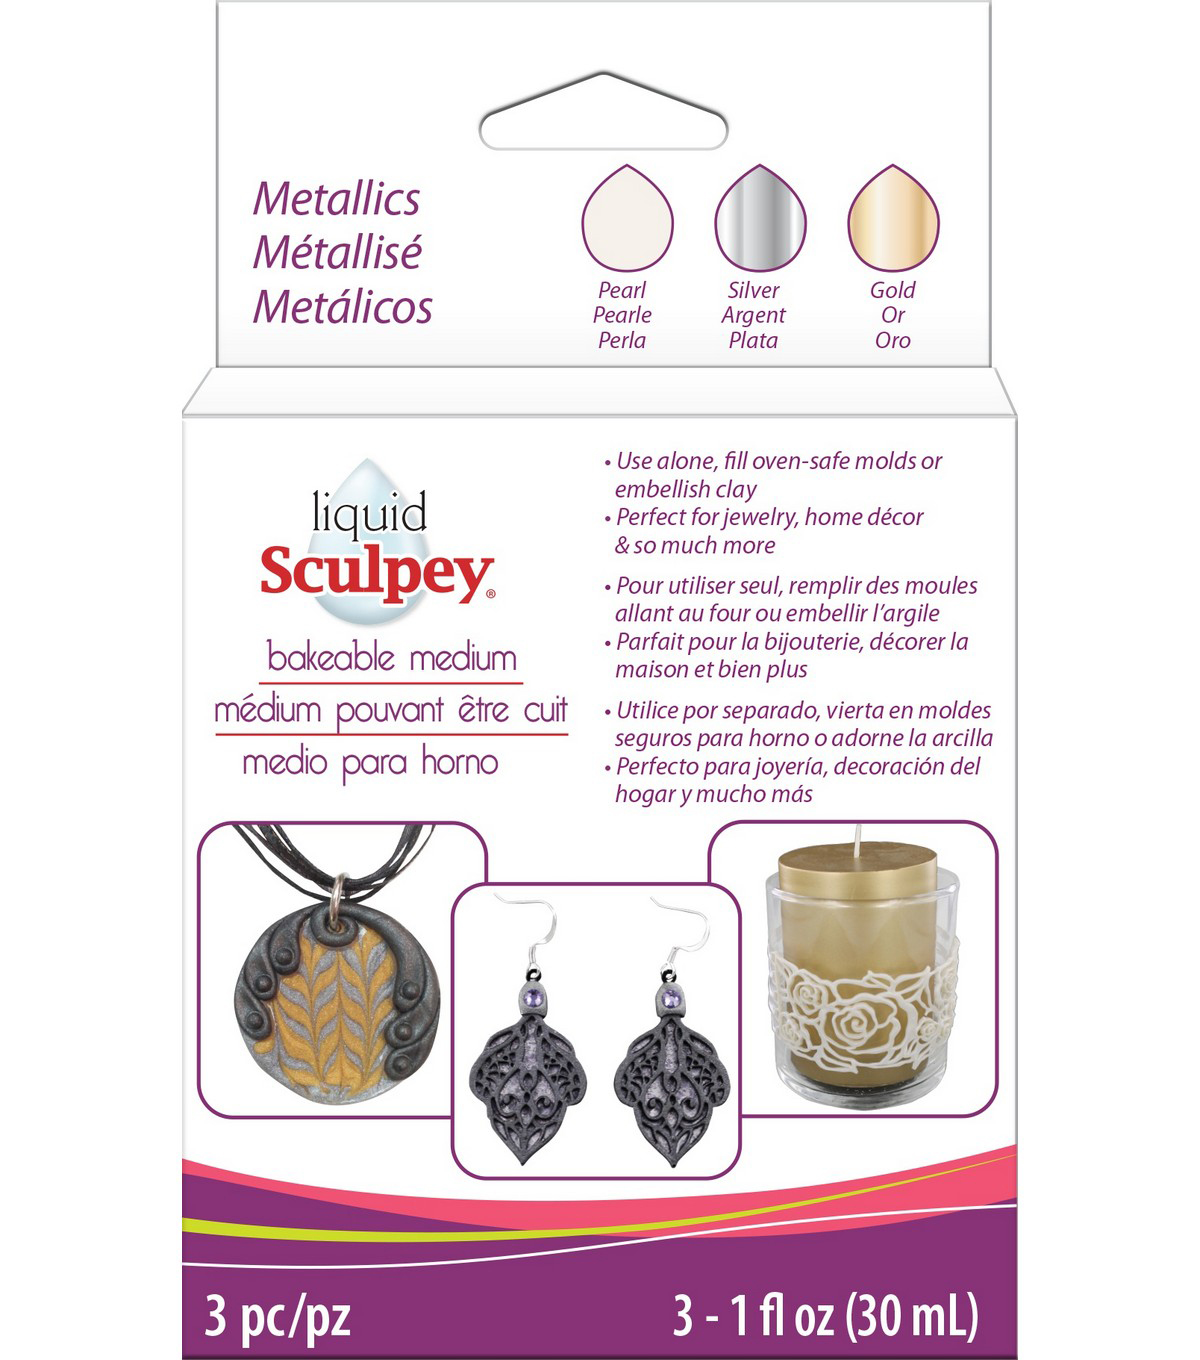 Sculpey 3 pk 1 fl. oz. Liquid Polymer Clay-Metallics